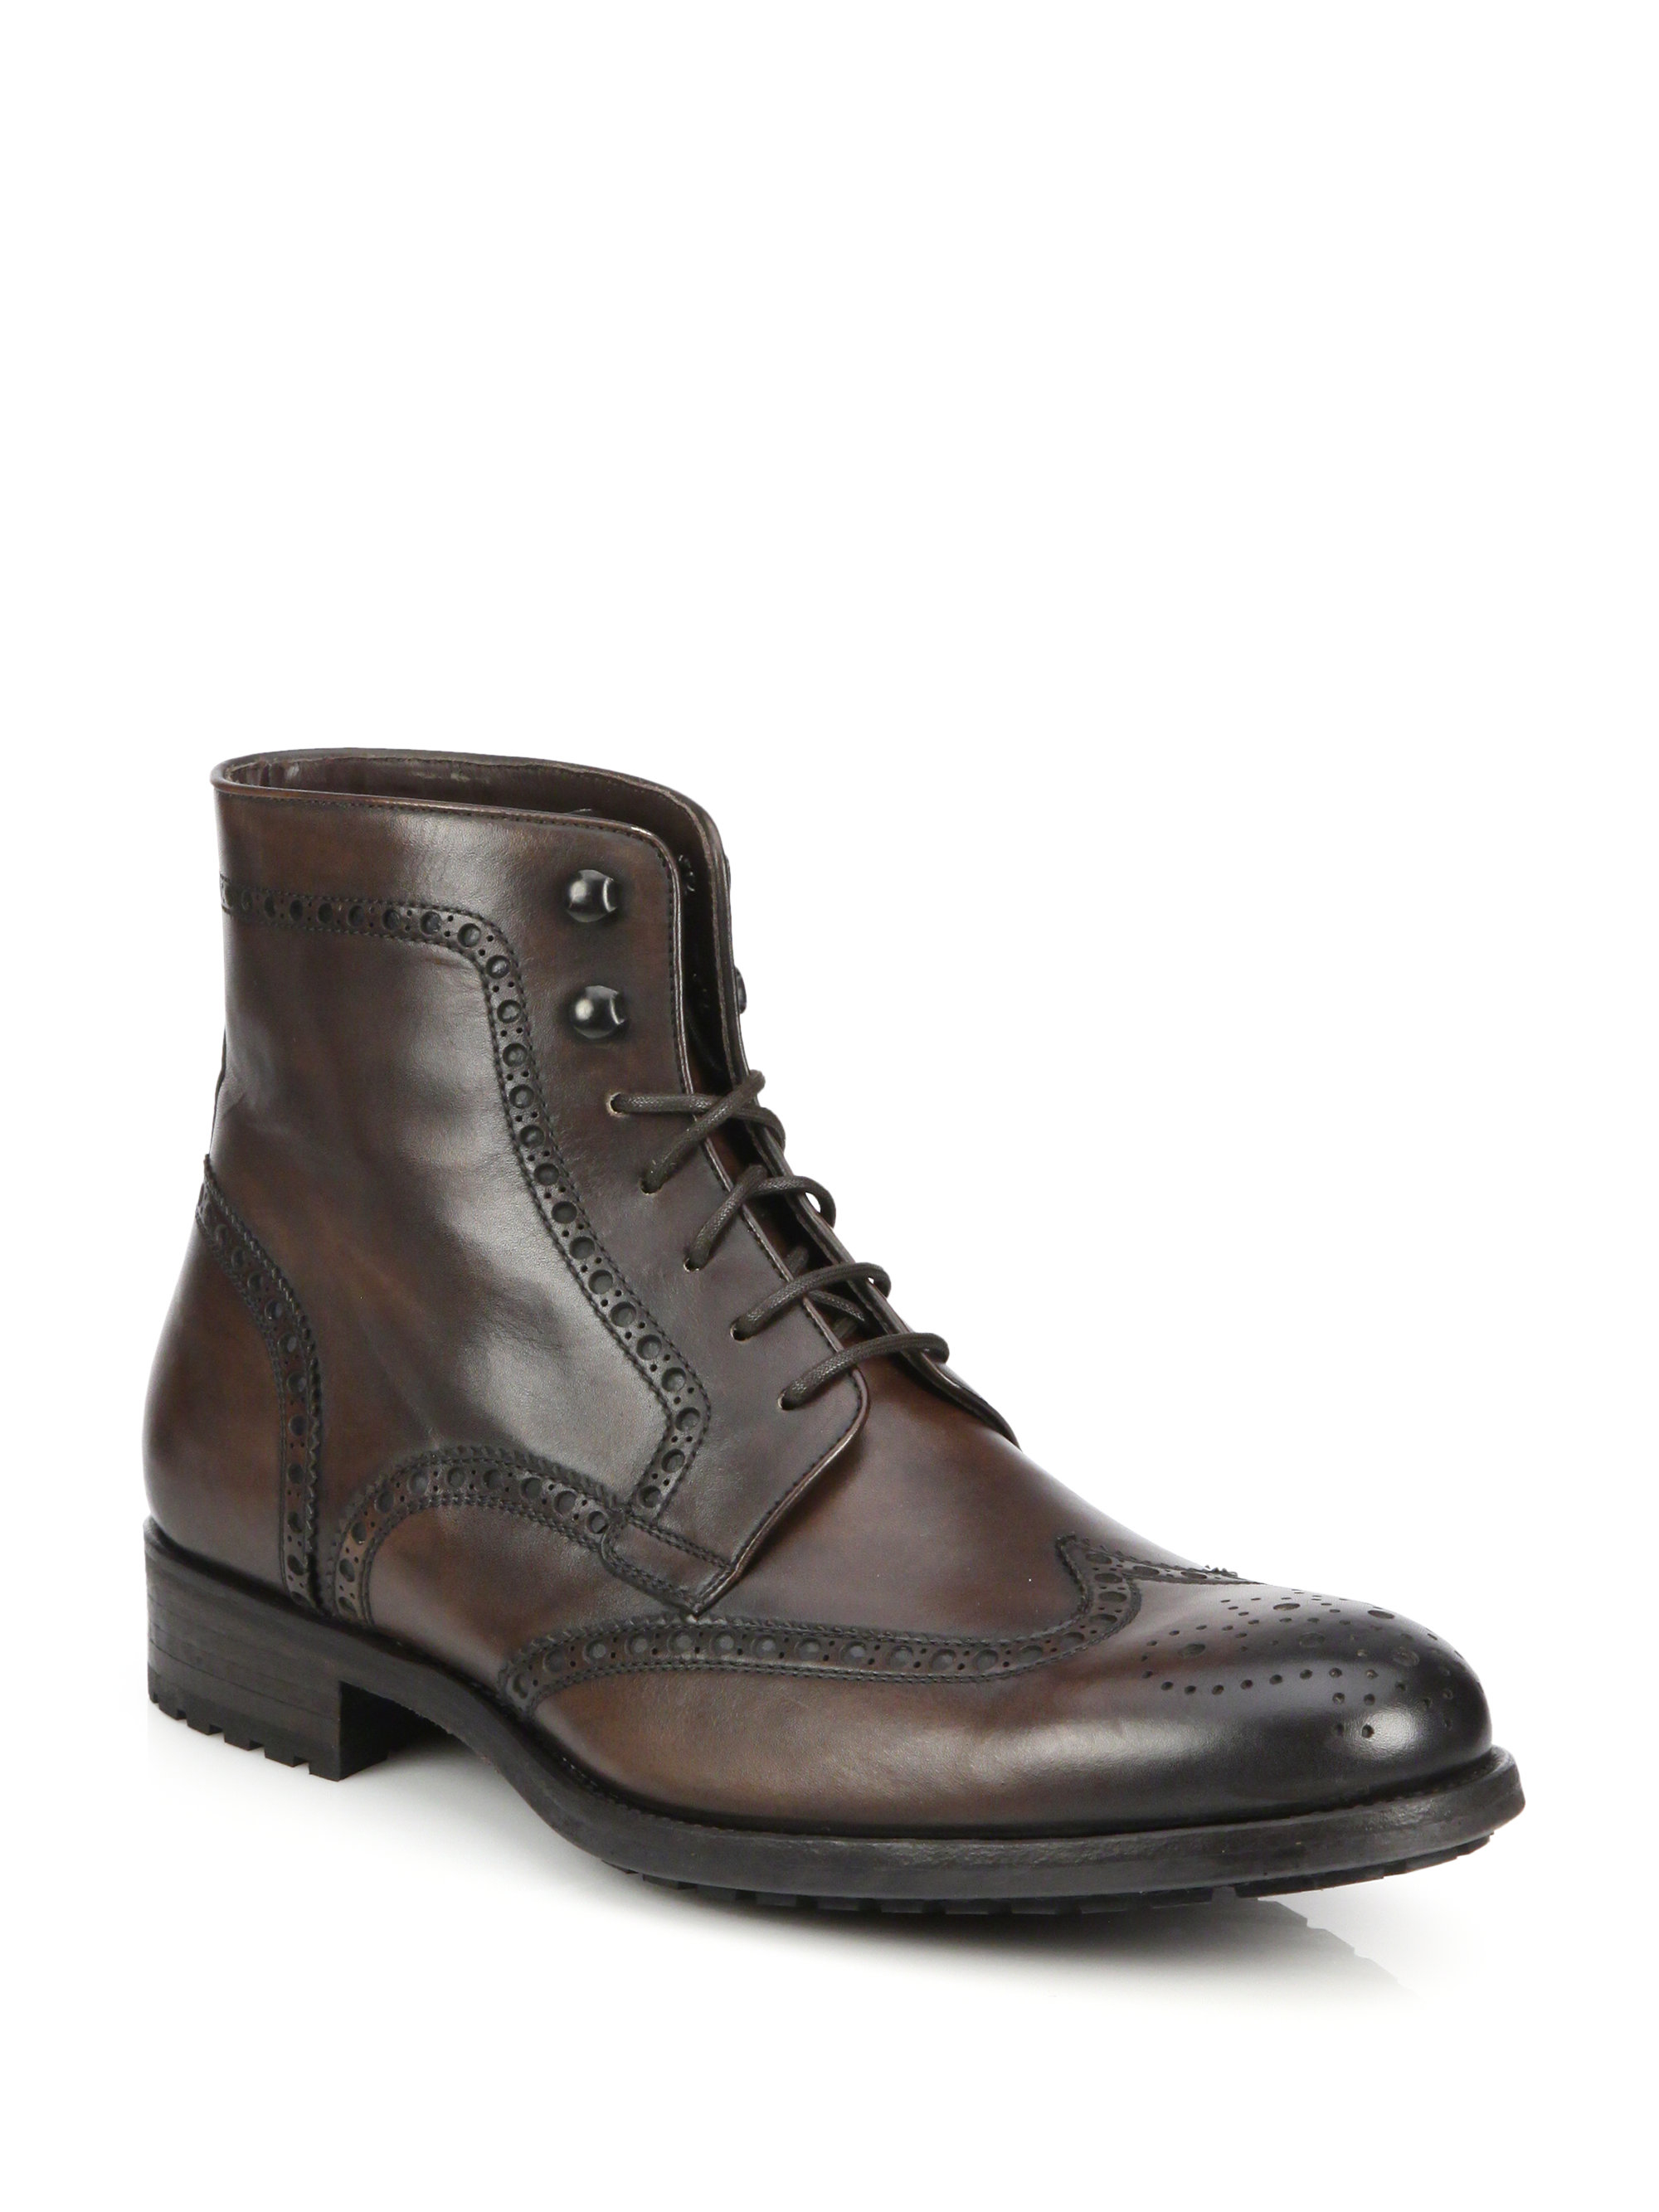 saks fifth avenue saks fifth avenue by magnanni burnished